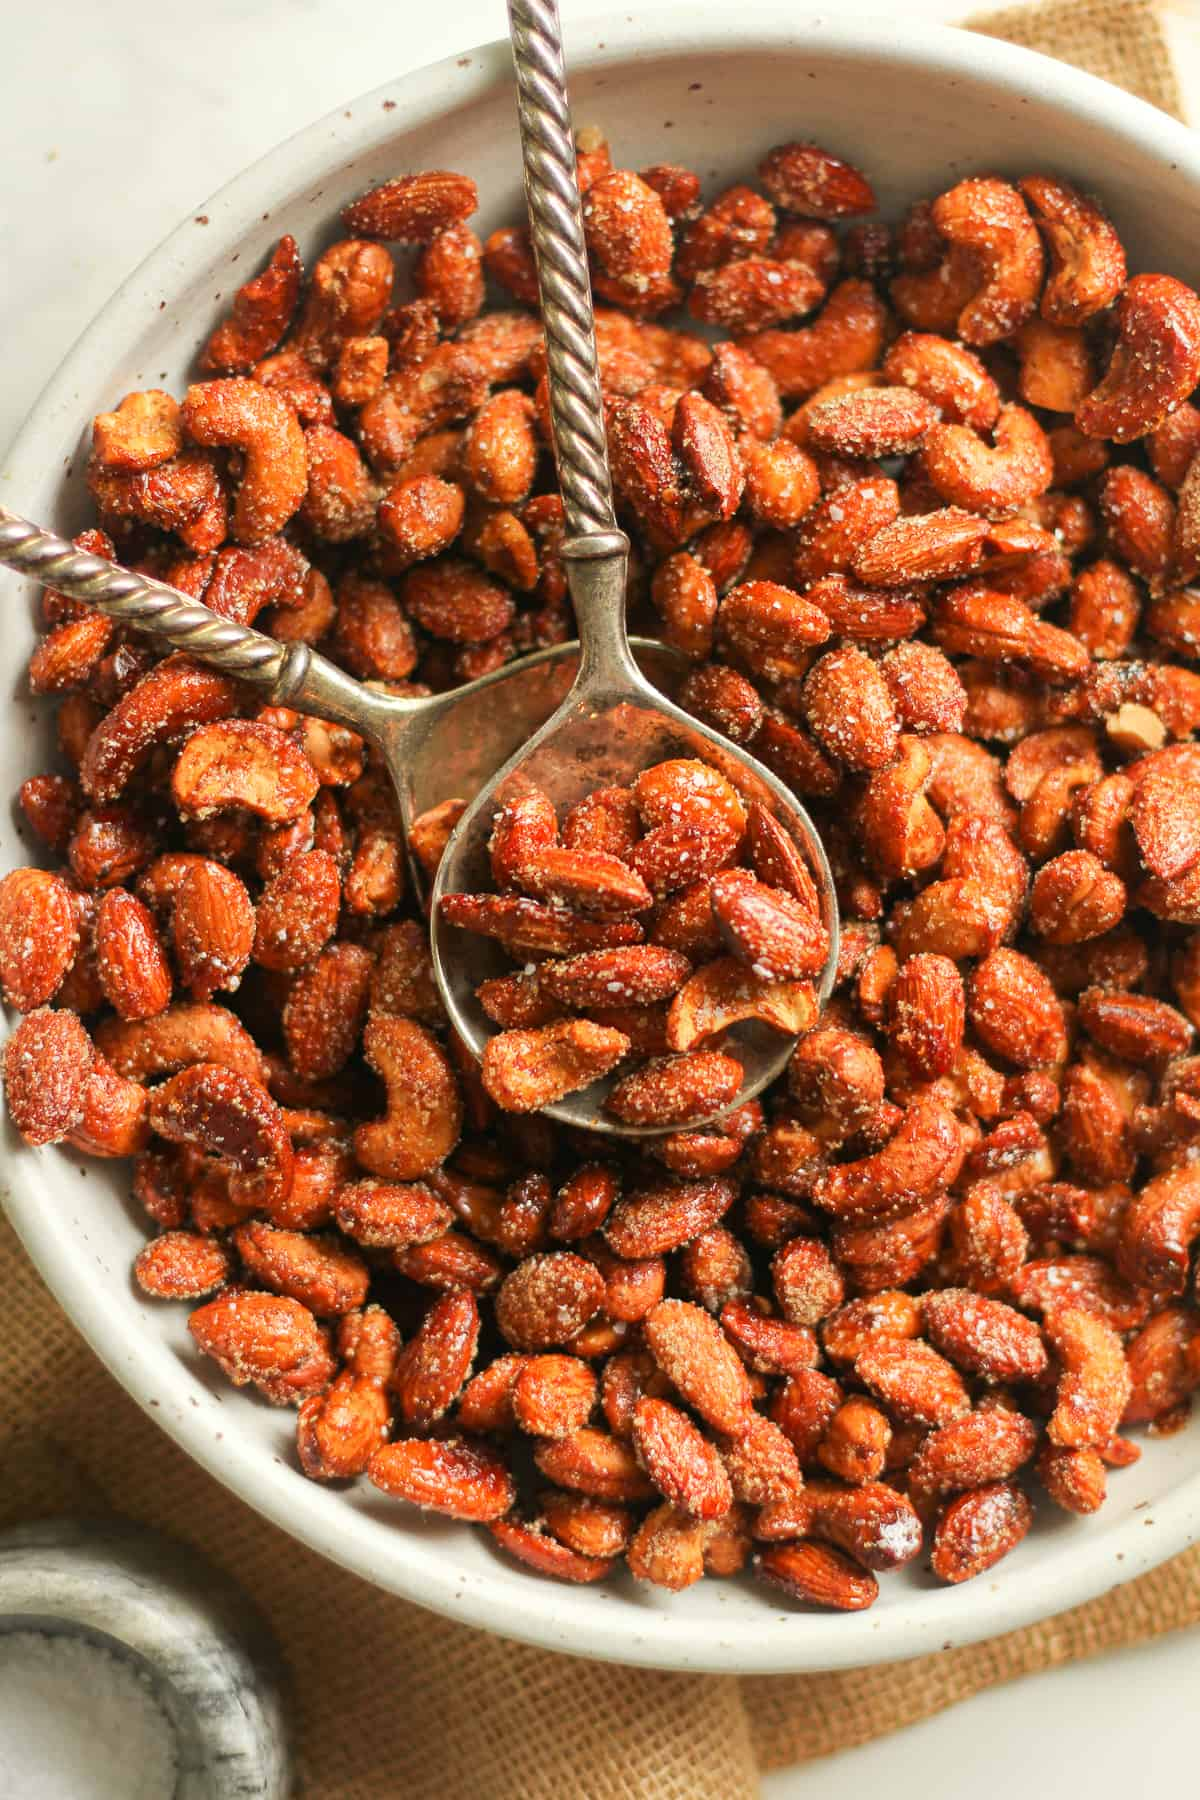 A bowl of the honey roasted nuts with serving spoons on top.